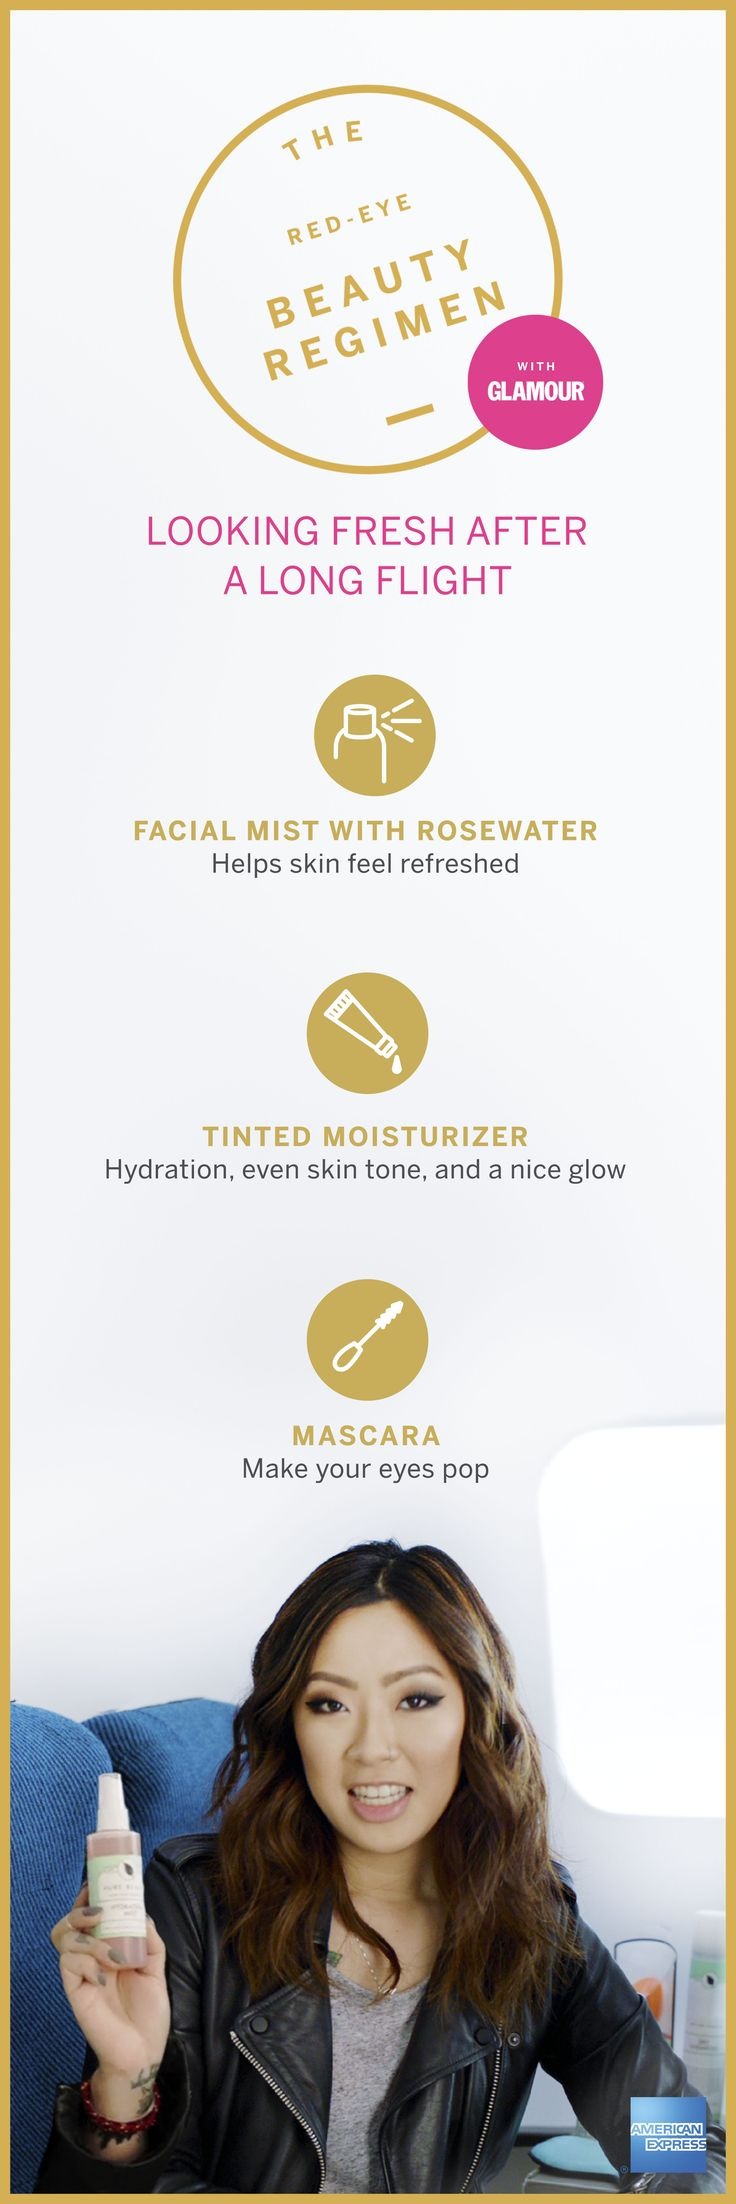 Just because you took the red-eye flight doesn't mean you have to look like you were up all night. We've got some Good As Gold beauty essentials from vlogger Claire Marshall to help you feel fresh on your next trip. Start with a facial mist, then apply tinted moisturizer for a natural glow, and finish with mascara to make your eyes pop. With this routine, you'll be feeling refreshed for your business trip or vacation. Click for more tips on how to survive an overnight flight…